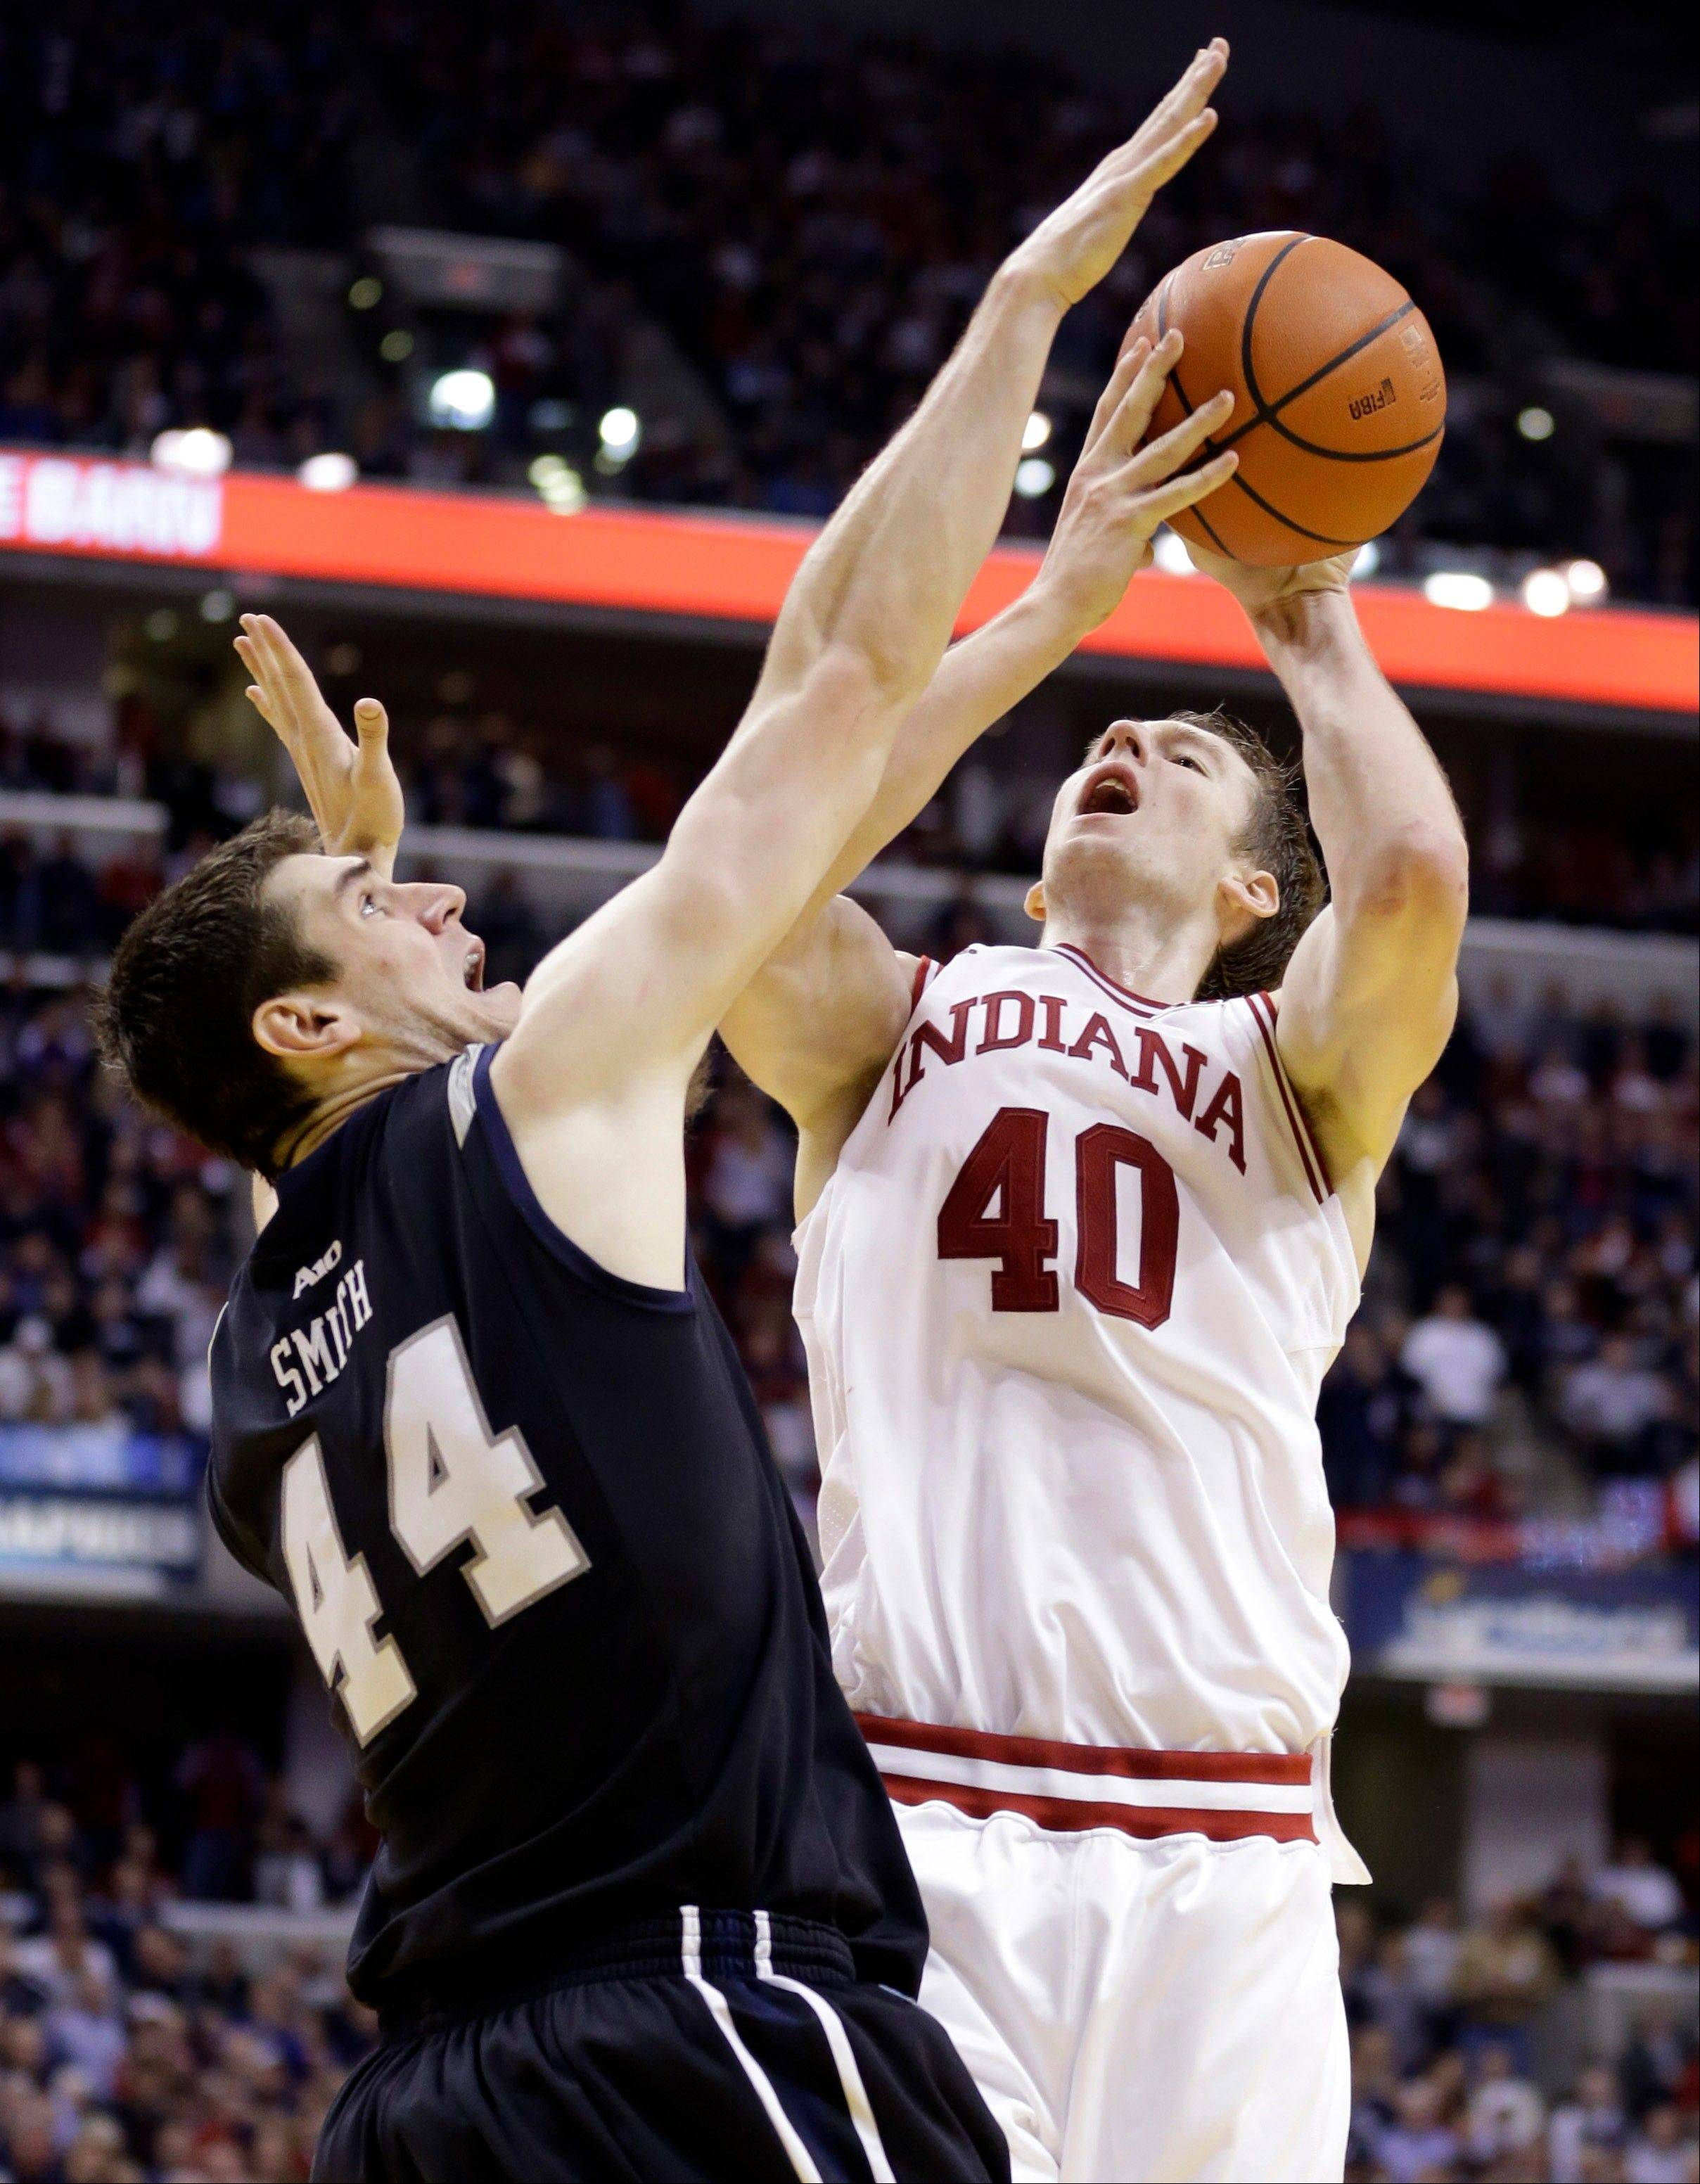 Indiana forward Cody Zeller, right, shoots over Butler center Andrew Smith in the second half of an NCAA college basketball game in Indianapolis on Saturday. Butler defeated Indiana 88-86 in overtime. Indiana�s loss means Duke takes the top spot in the AP poll.